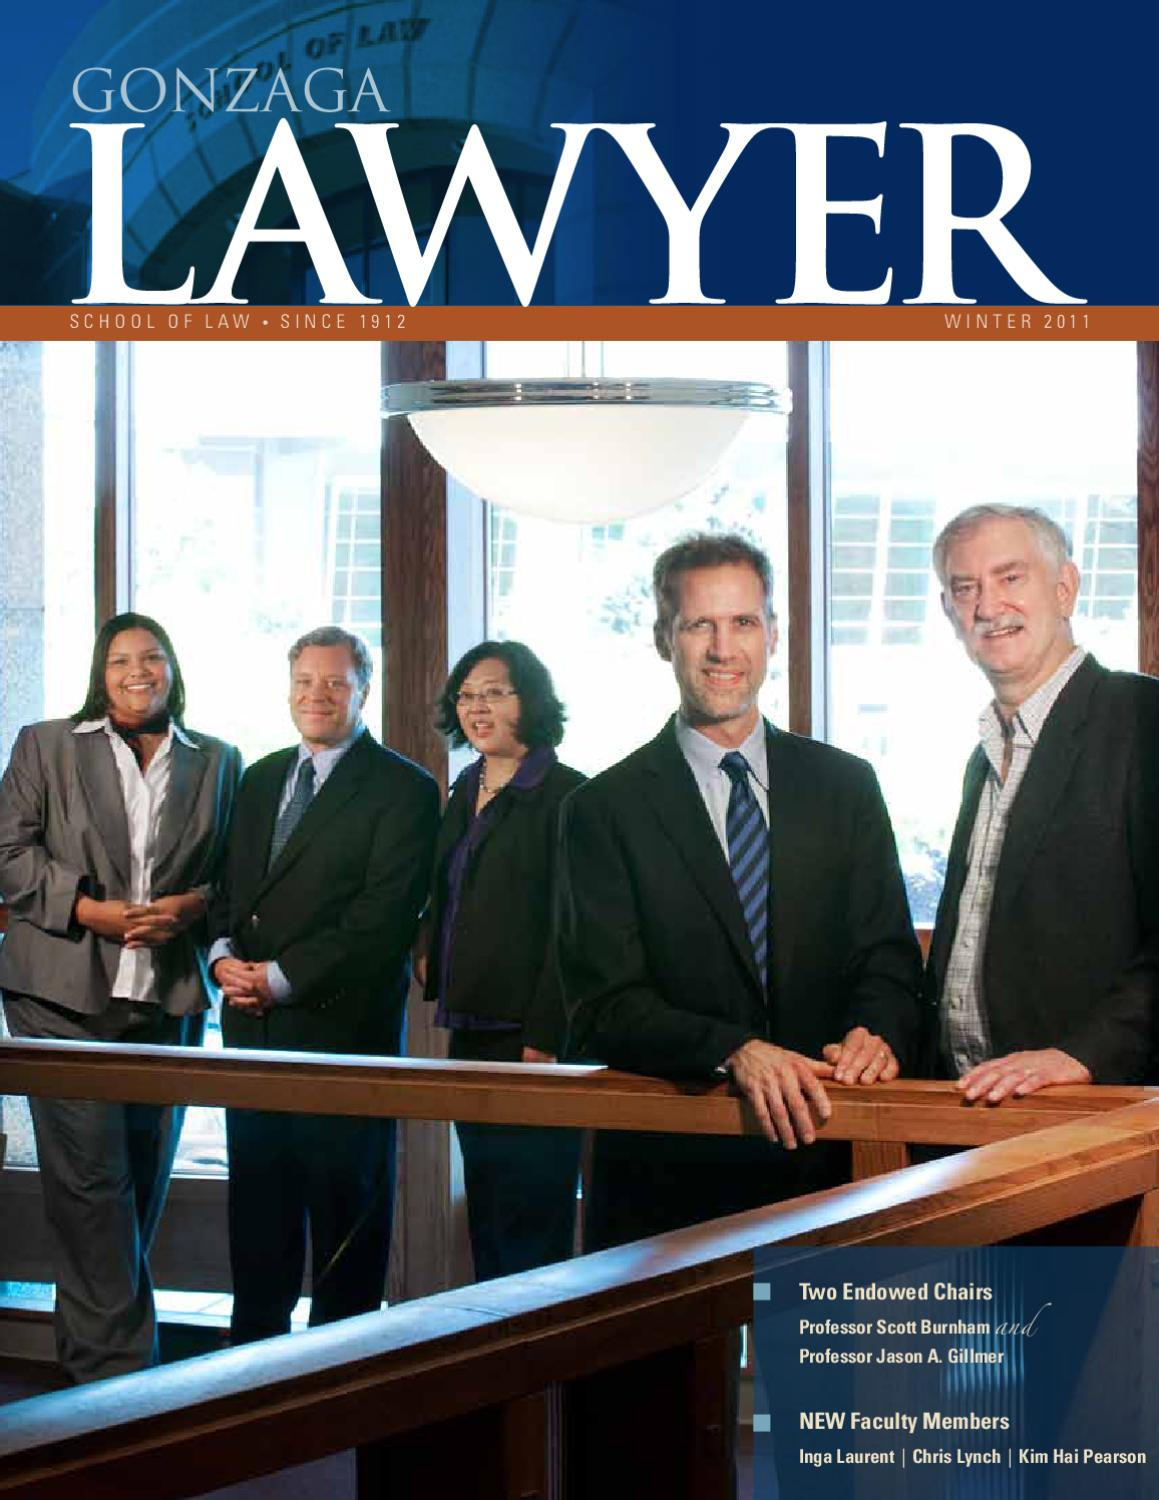 ISSUU - Gonzaga Lawyer Winter 2011 by Gonzaga University